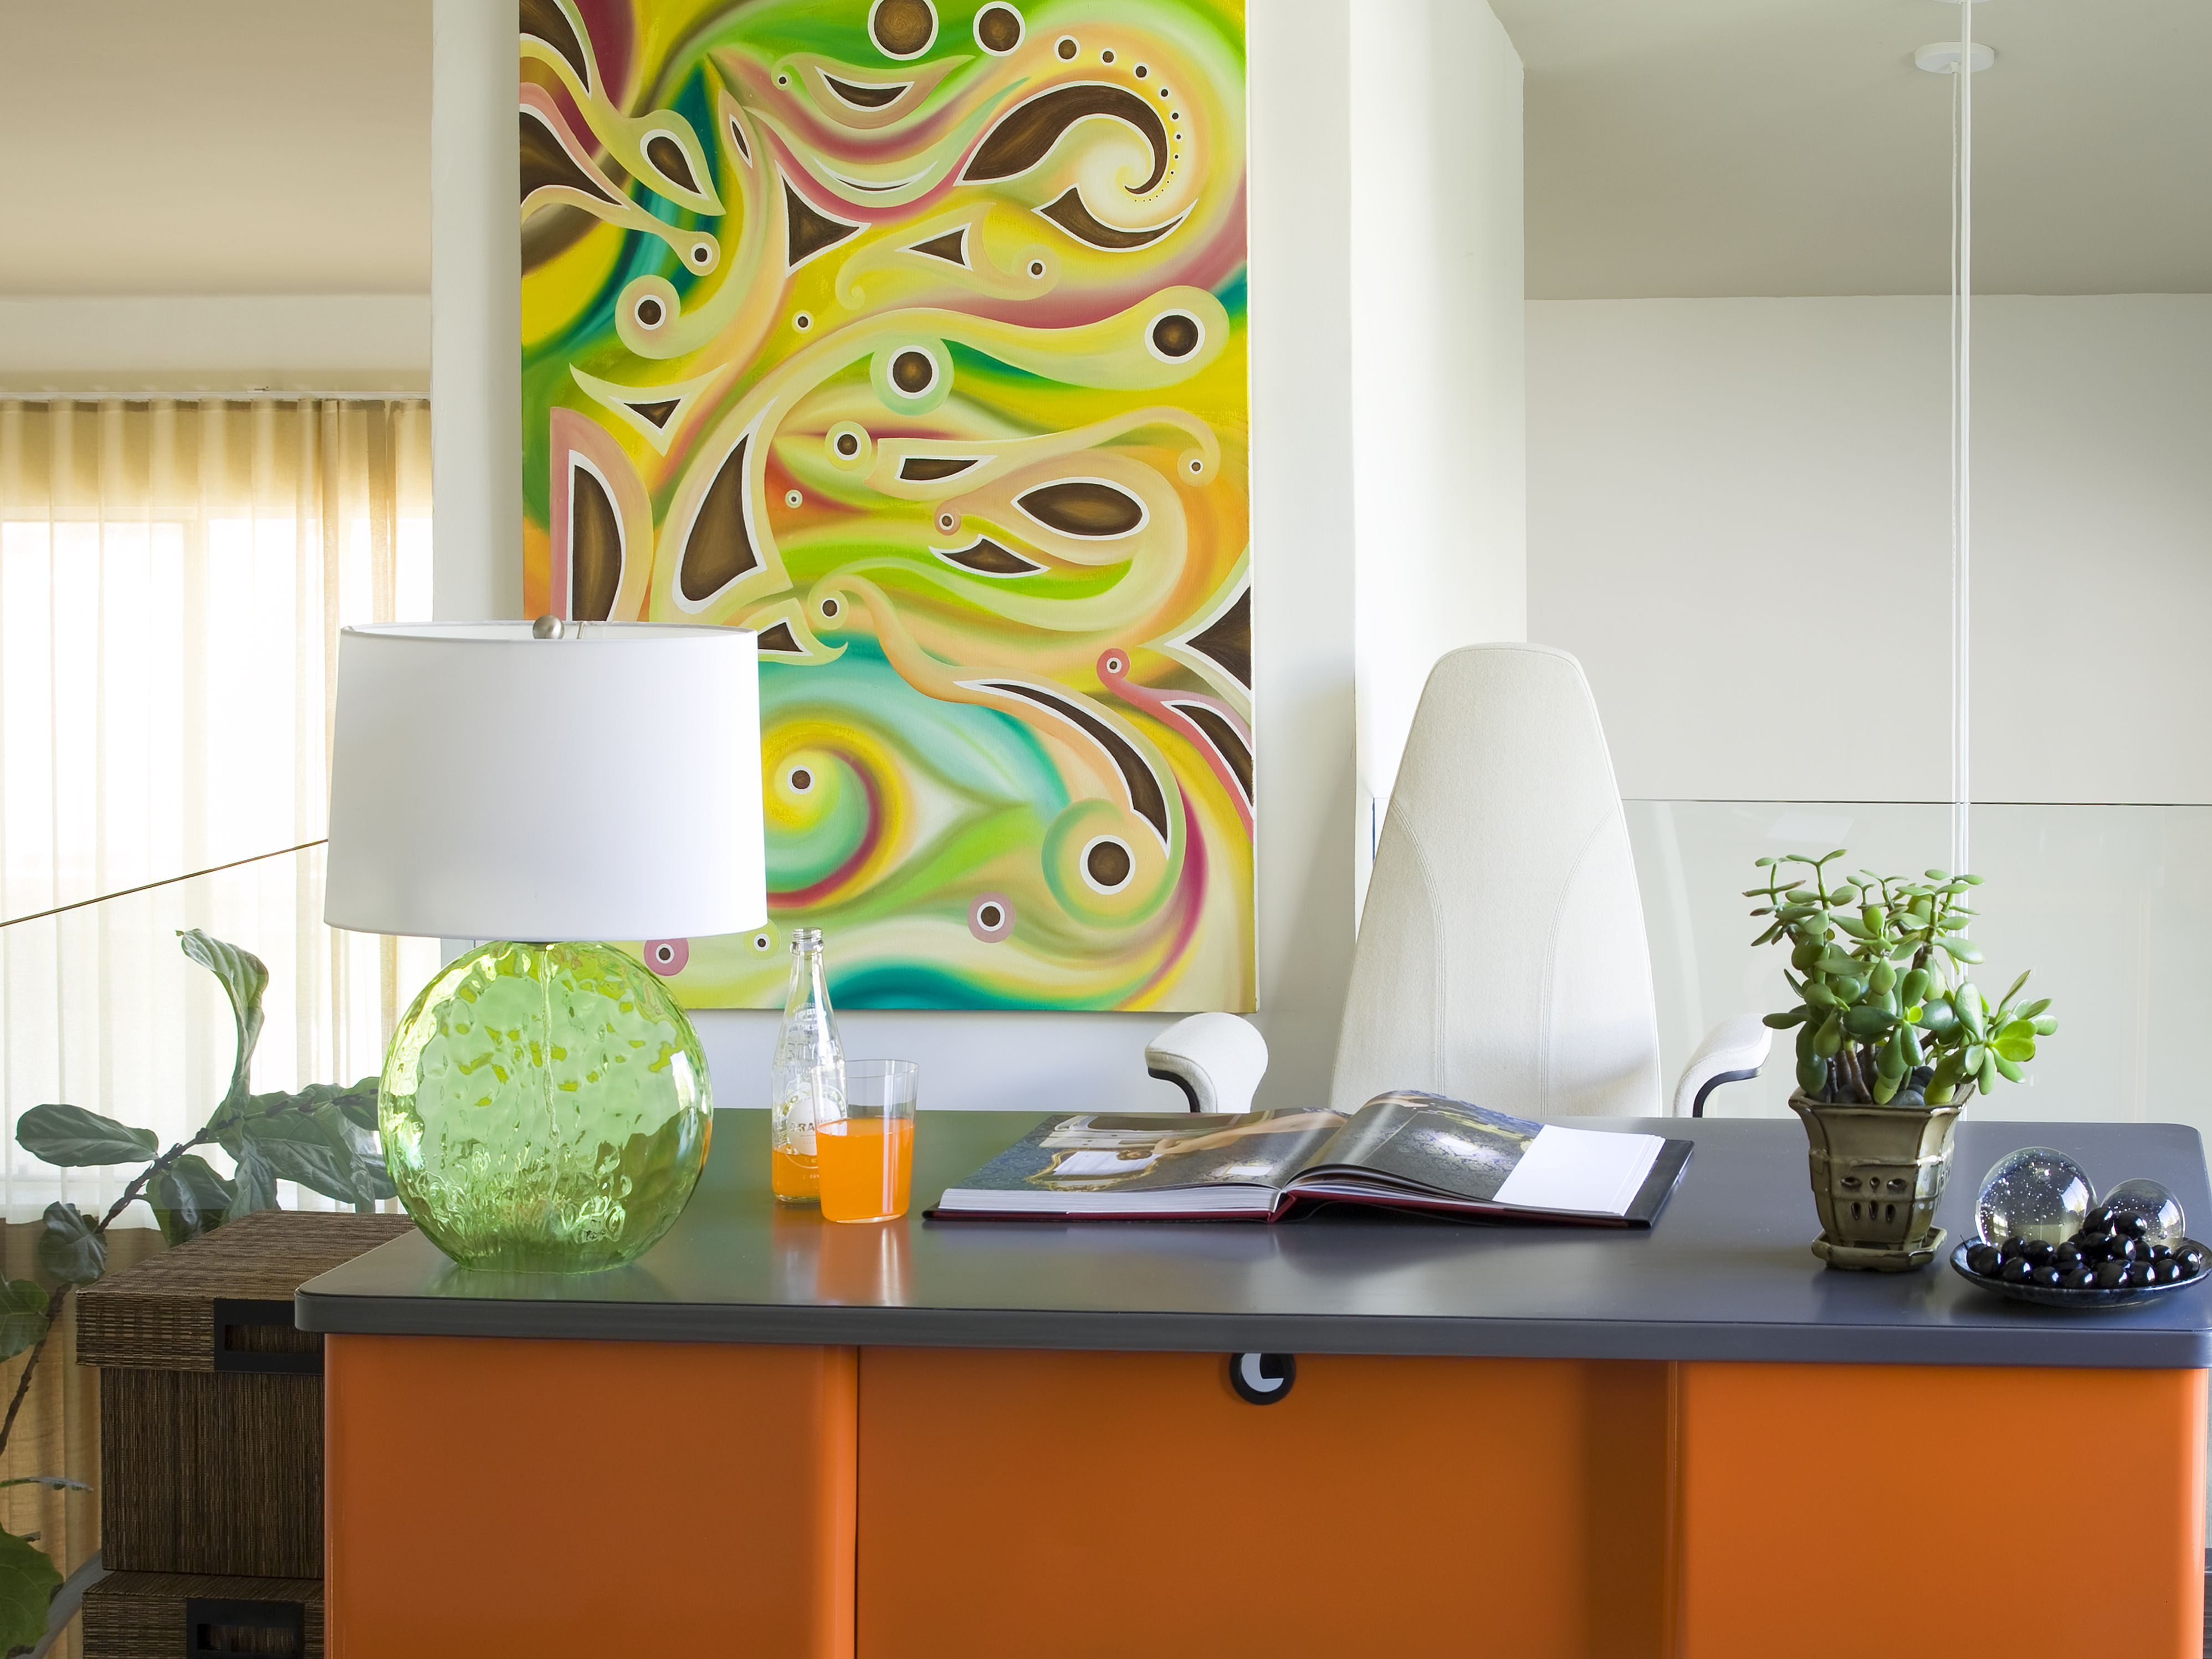 Pretty Canvas Portray Added White Wall Painted And Modern Orange Hardwood Office Desk With Shade Lamps As Decor Ideas